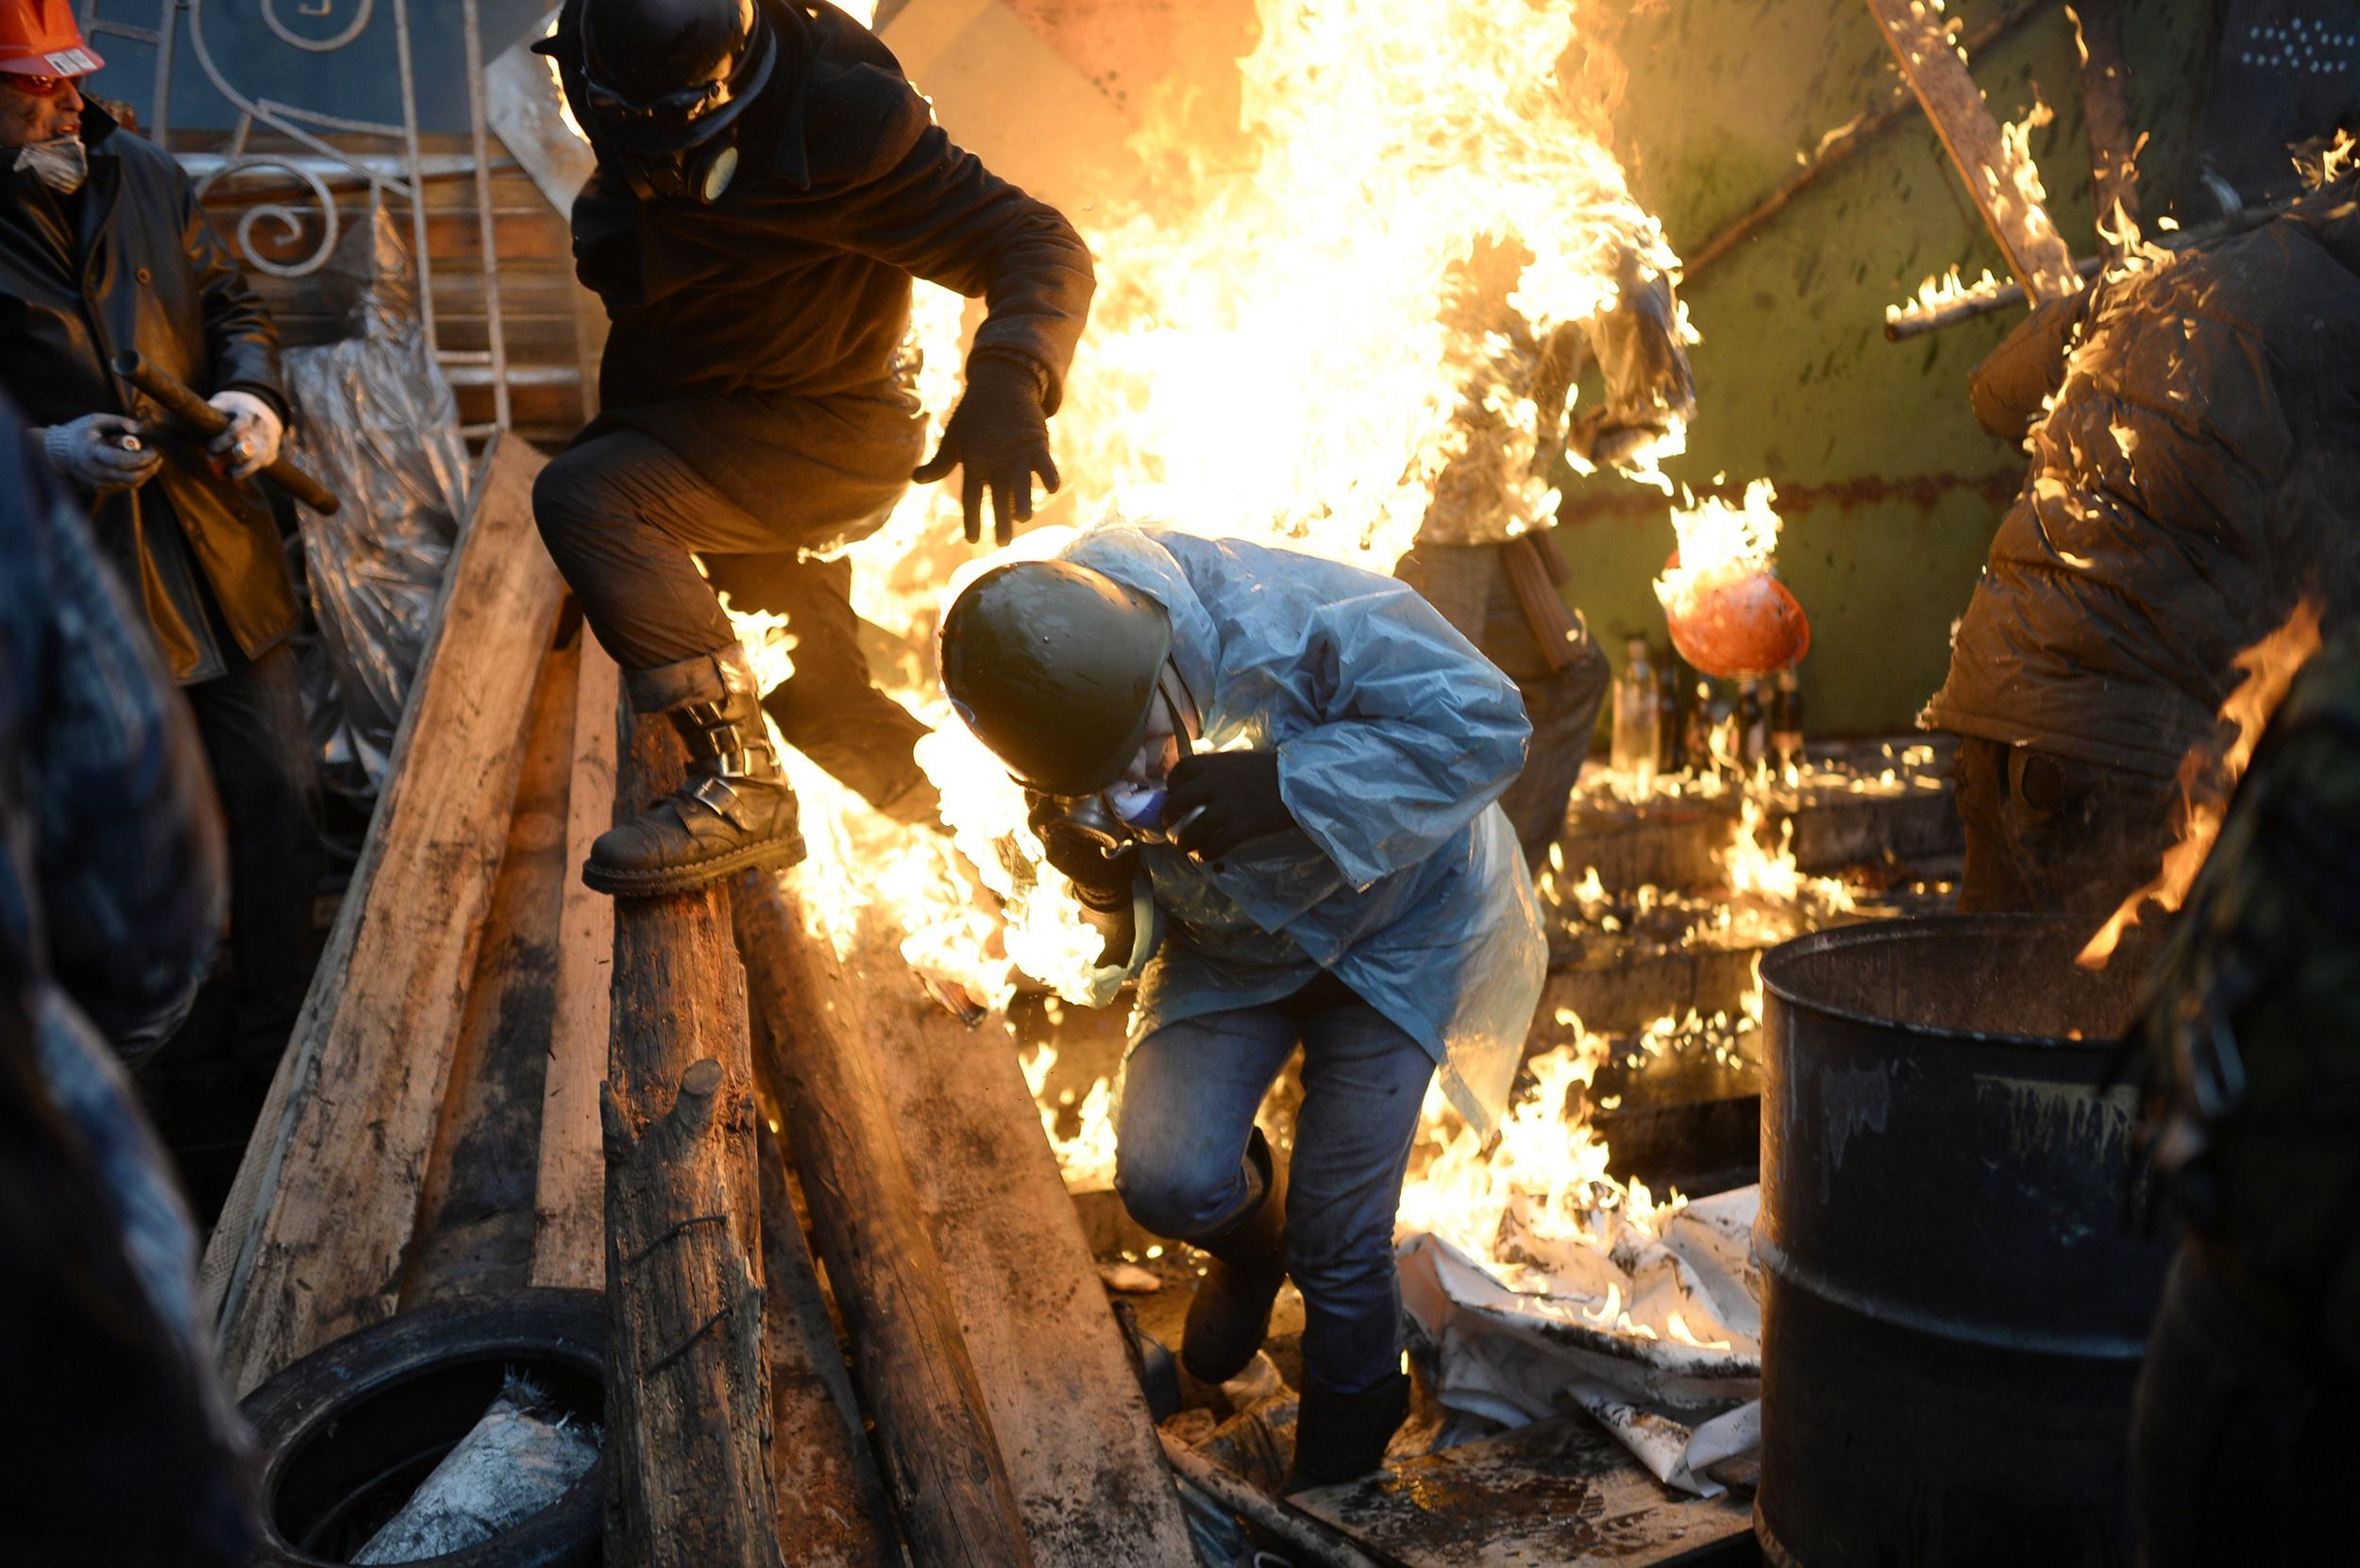 Image: Protesters try to protect themselves from fire as they stand behind burning barricades during clashes with police